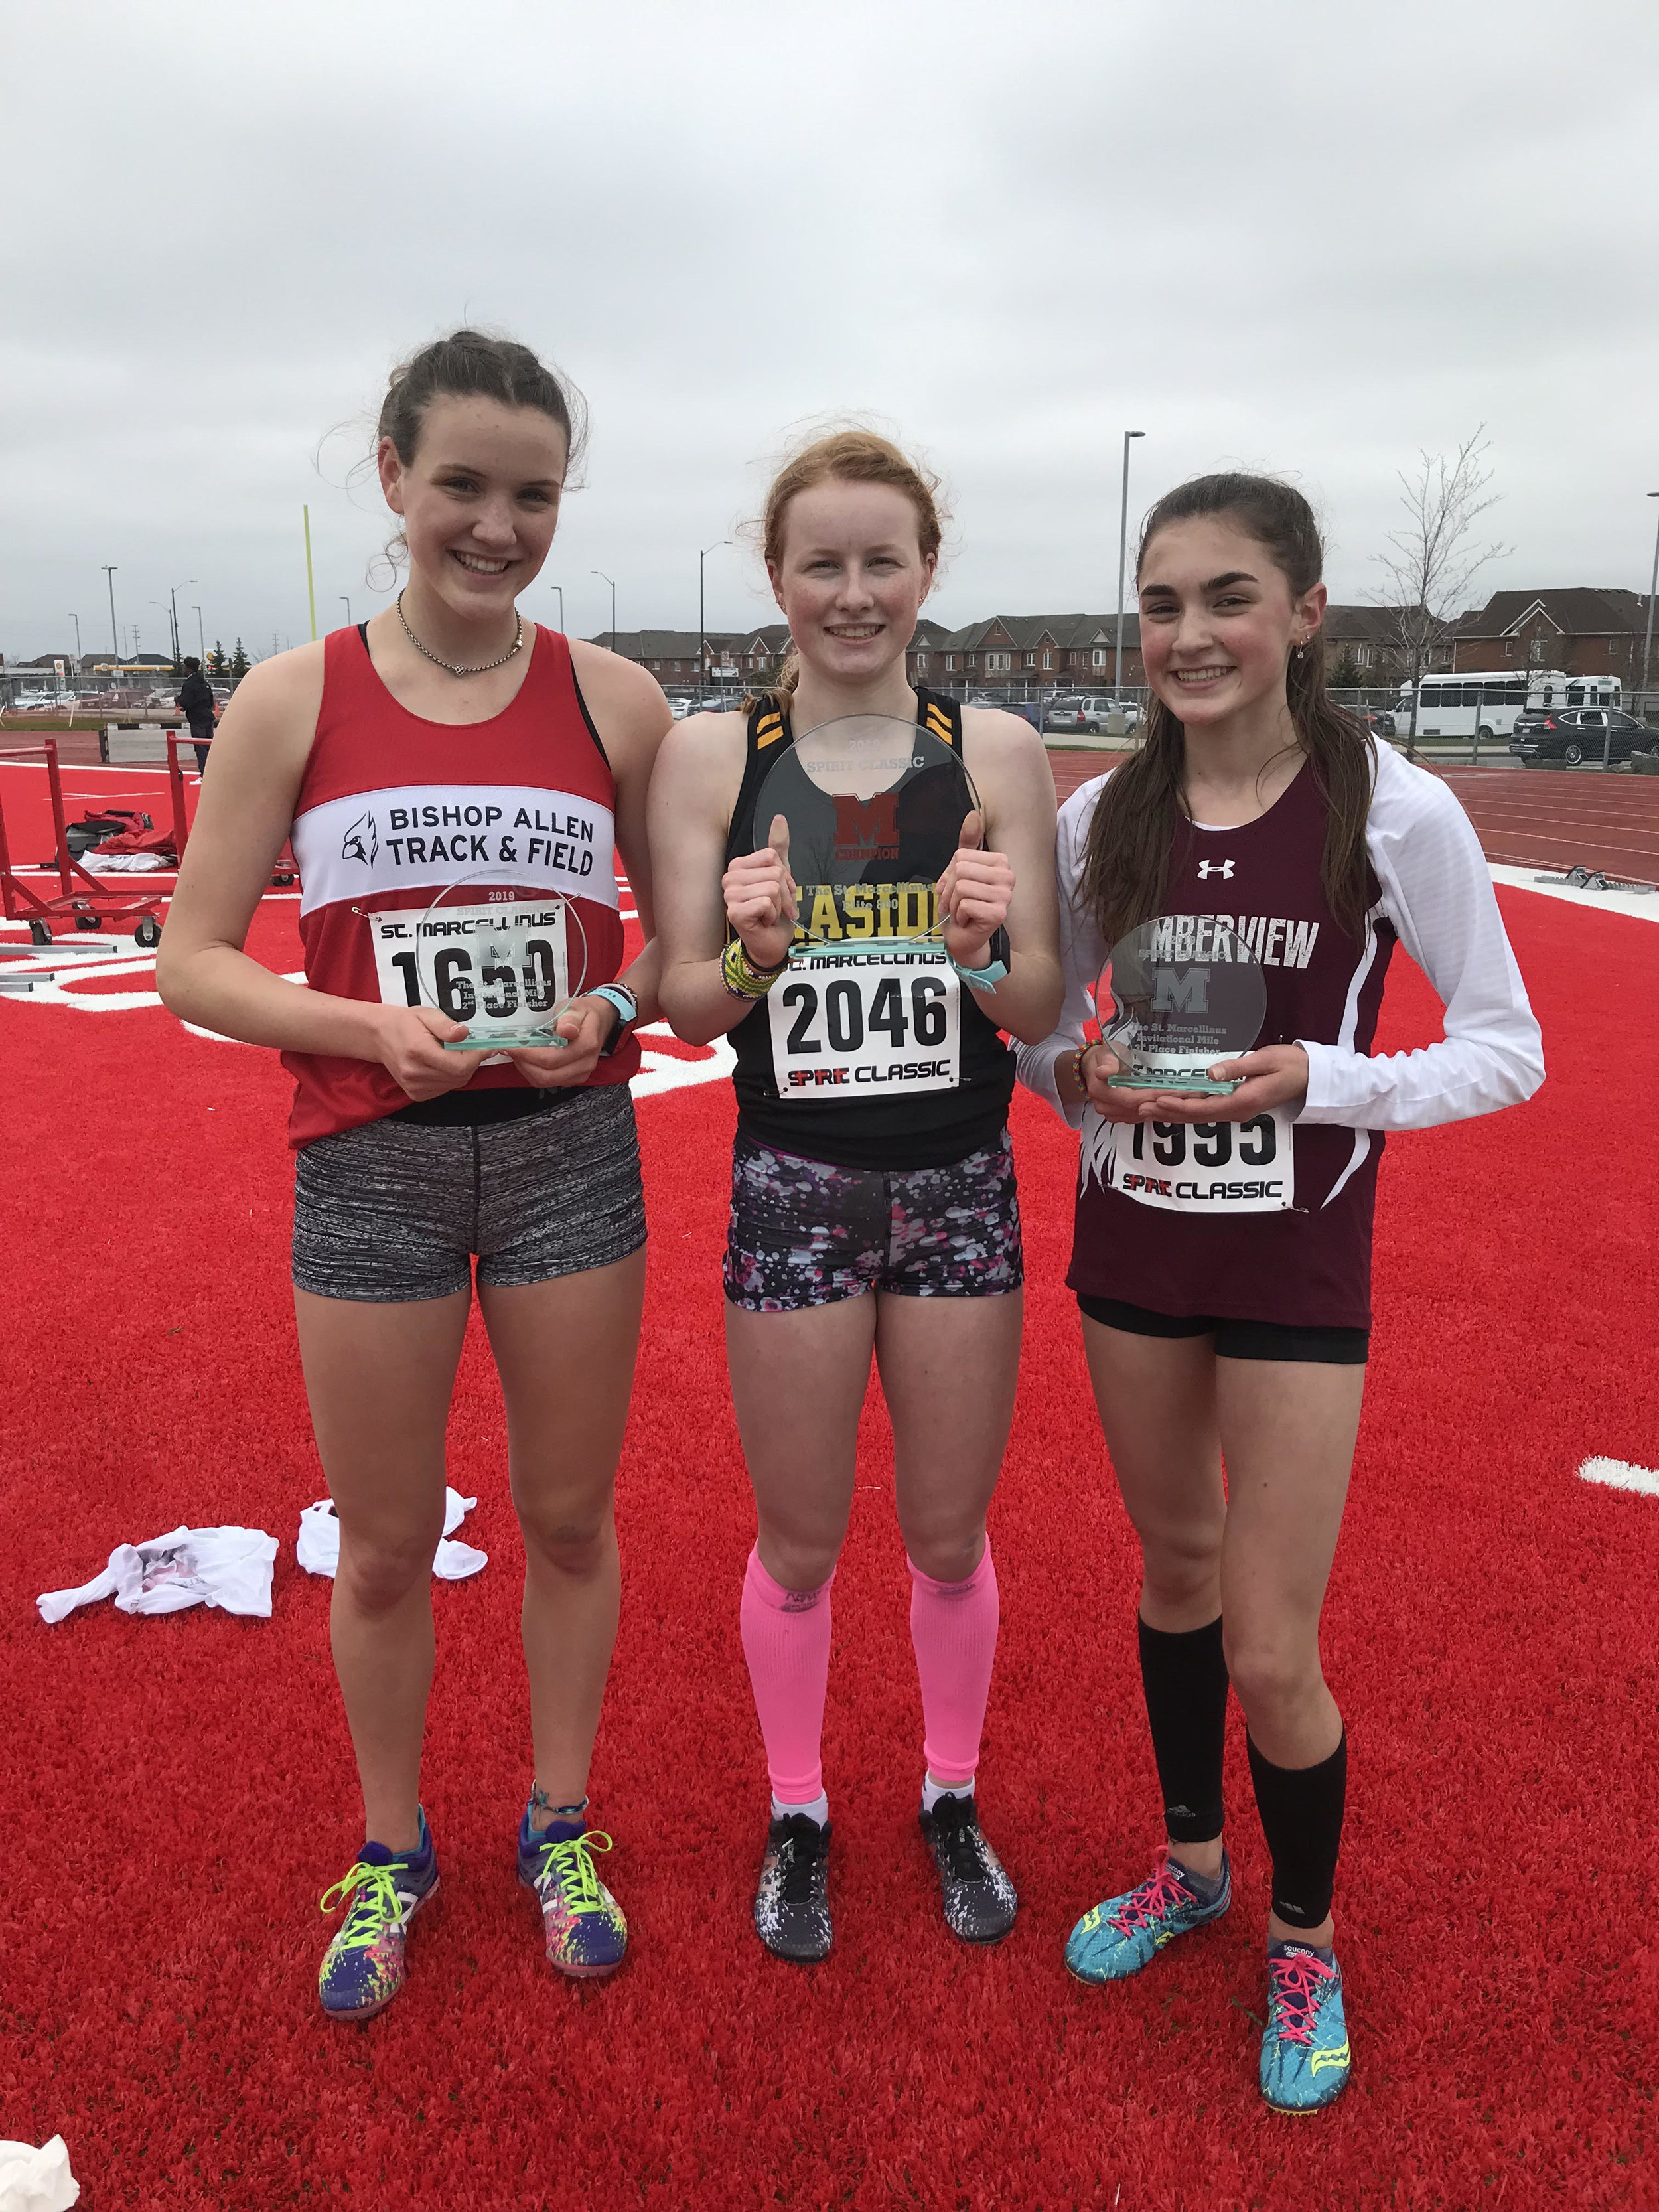 Top 3 in The St. Marcellinus Elite 800m in 2019: Bronze-Aysia Maurice, Humberview-2:17.10. Silver-Sophia Lucki, Bishop Allen-2:14.70. Champion & pictured above Sophie Coutts, Leaside HS-2:14.20!